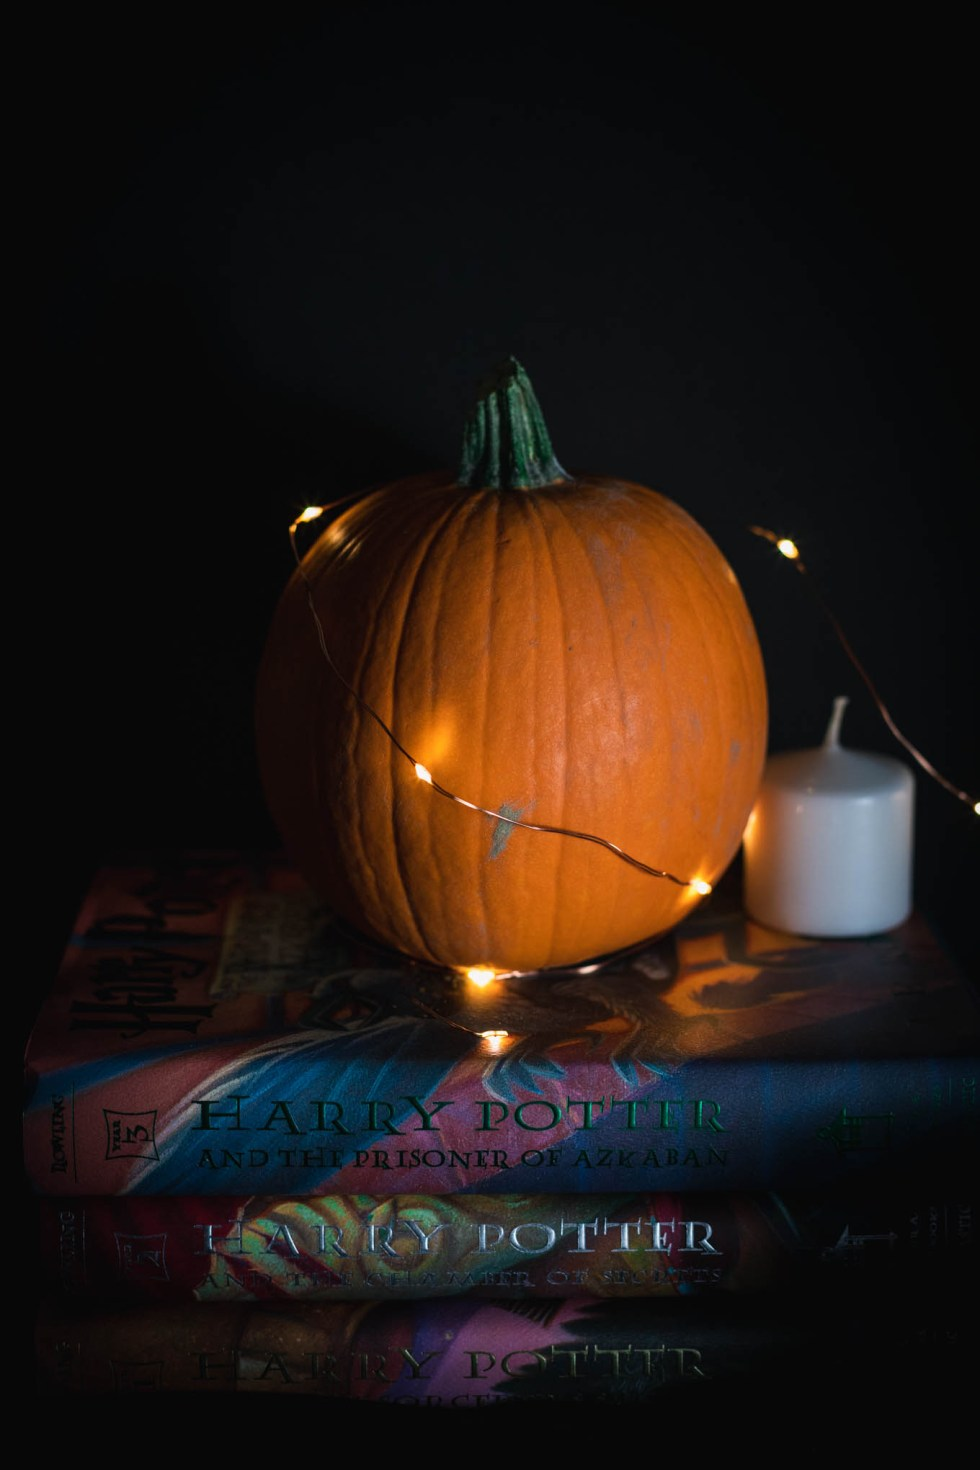 Pumpkin and orange twinkly lights stacked on top of Harry Potter books